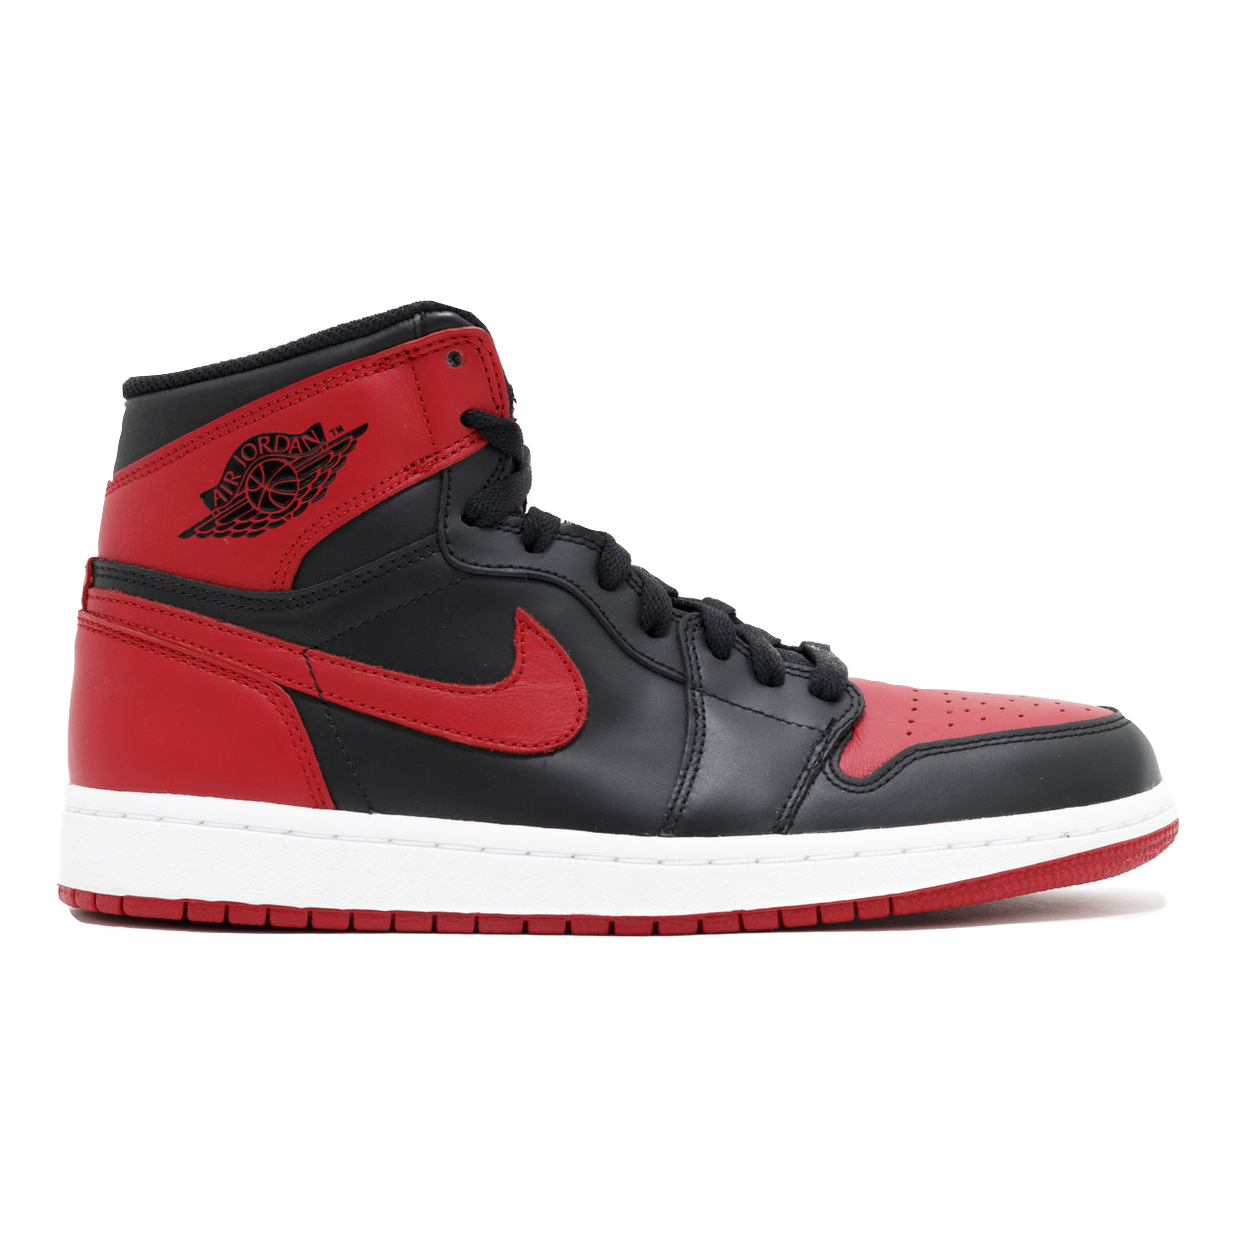 e36d3a3d88ef 63611742962-air-jordan-1-retro -high-og-bred-black-varsity-red-white-011845 1 burned.png v 1547107952